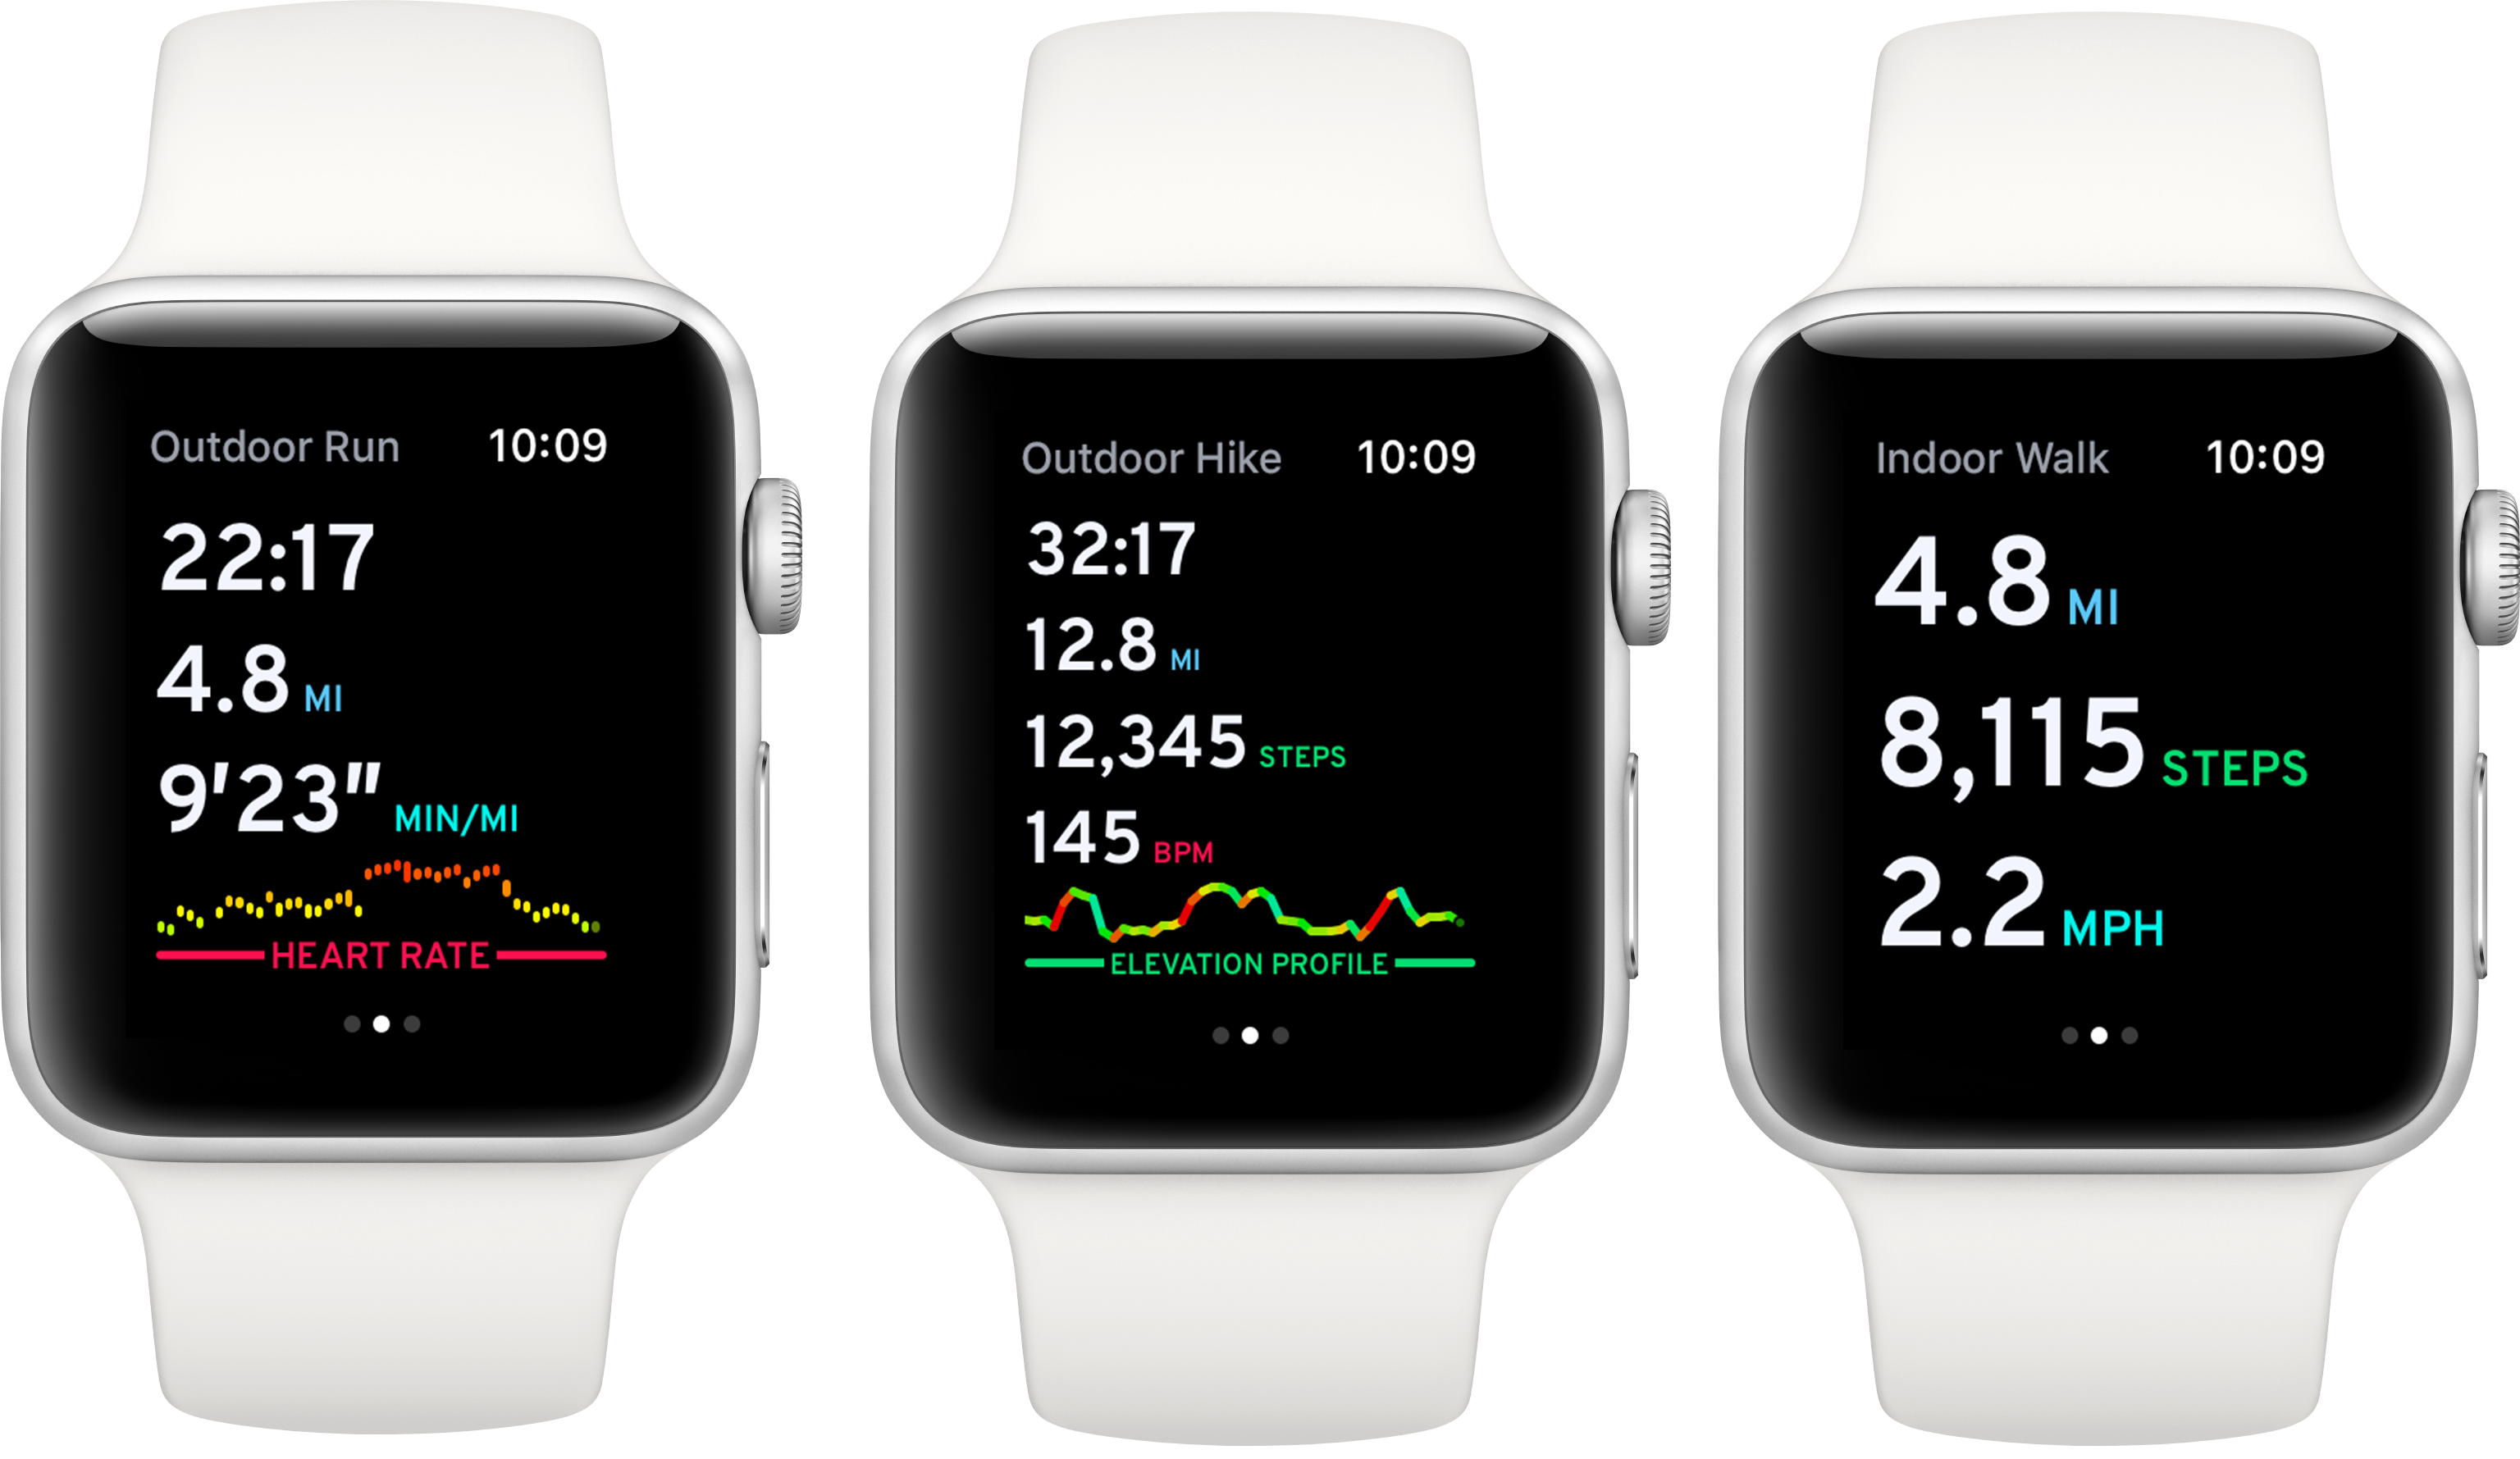 Best hiking apps for apple watch 3